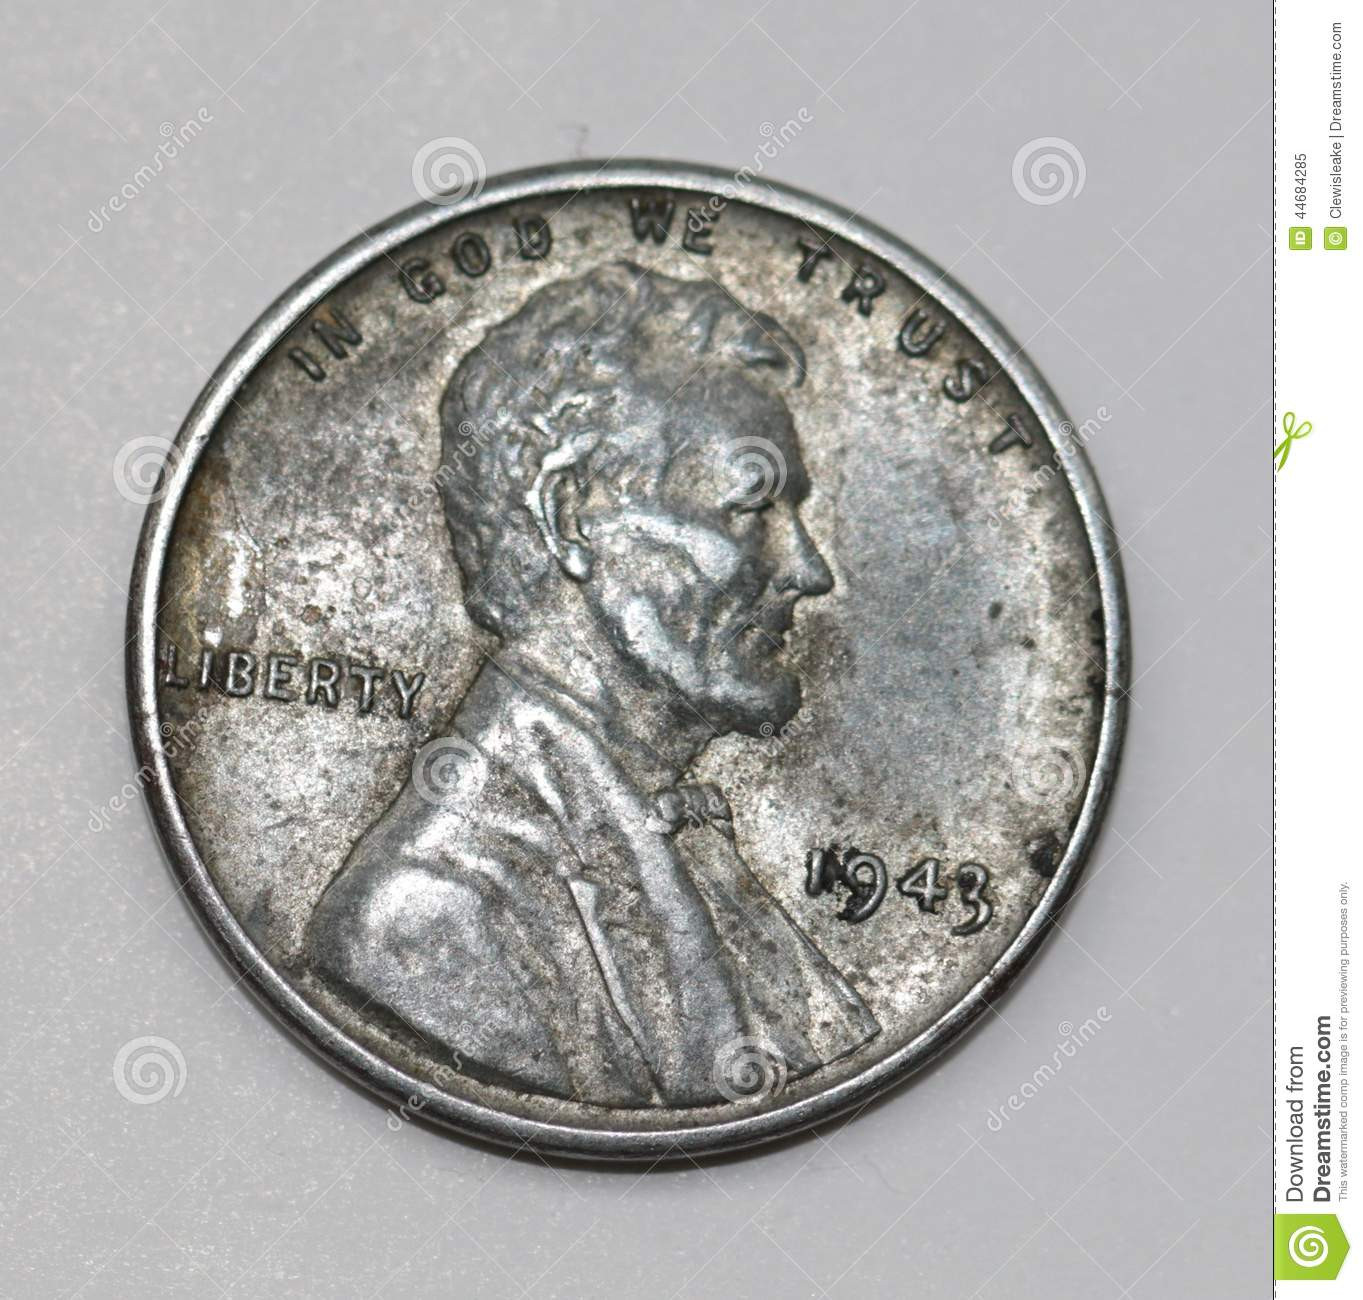 Steel Penny Value Awesome 1943 Abraham Lincoln Steel Penny Editorial Image Image Of Charming 47 Models Steel Penny Value